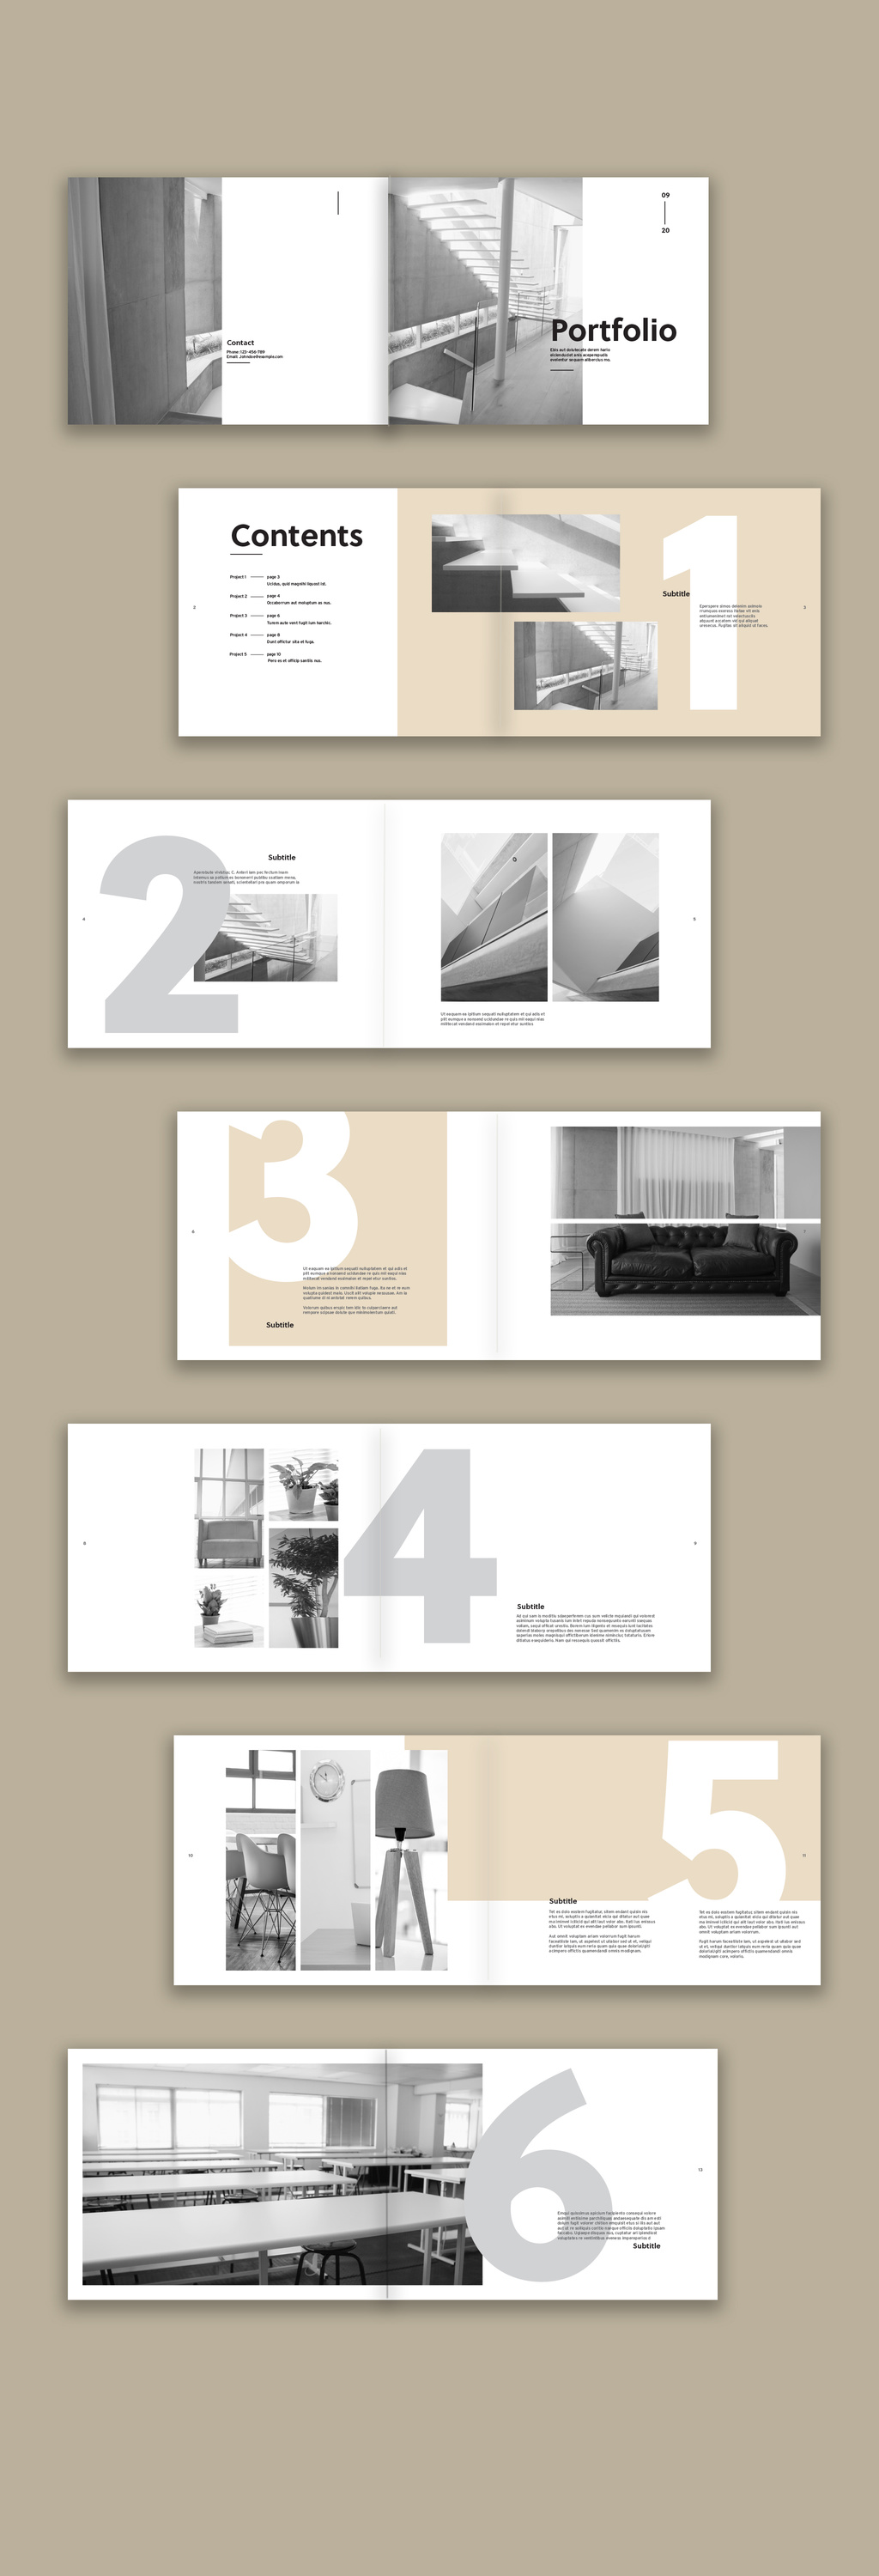 Design and Furniture Portfolio with Neutral Elements brochure